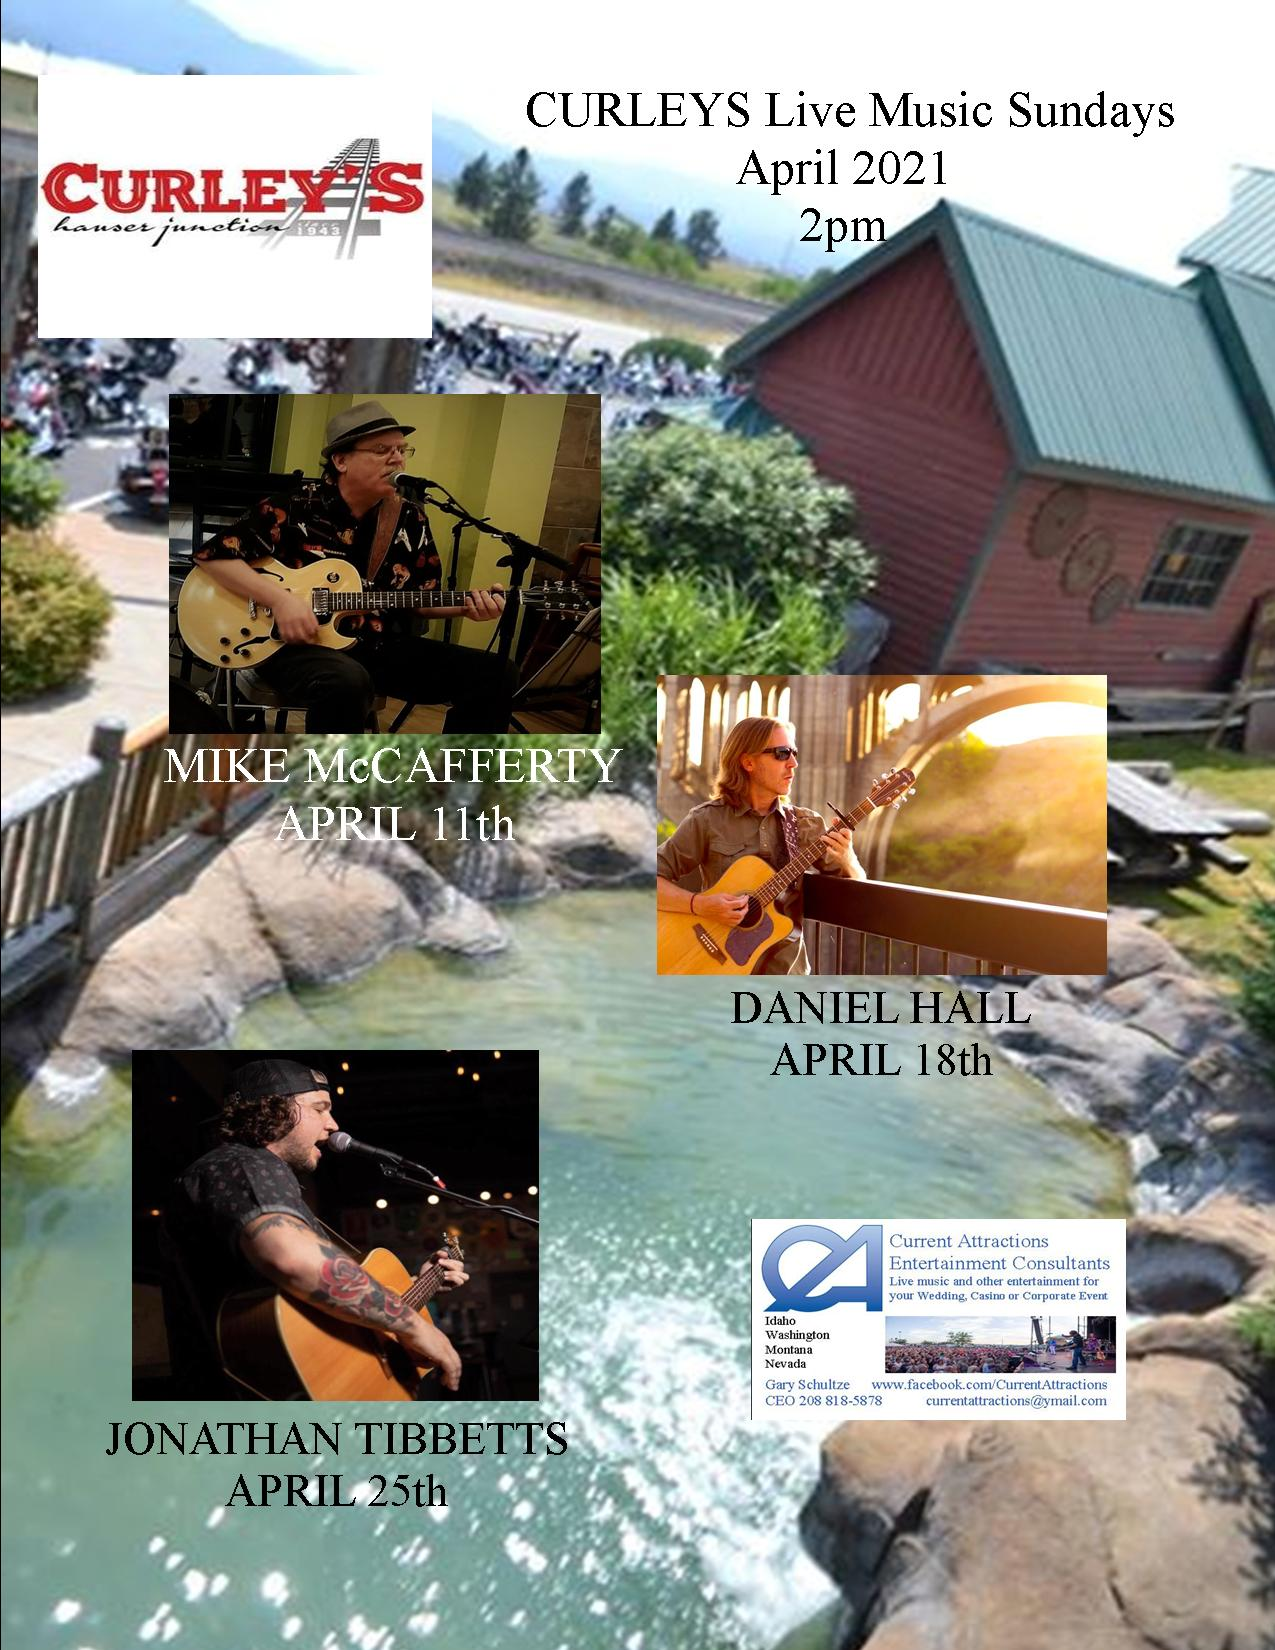 Curley's January Bands